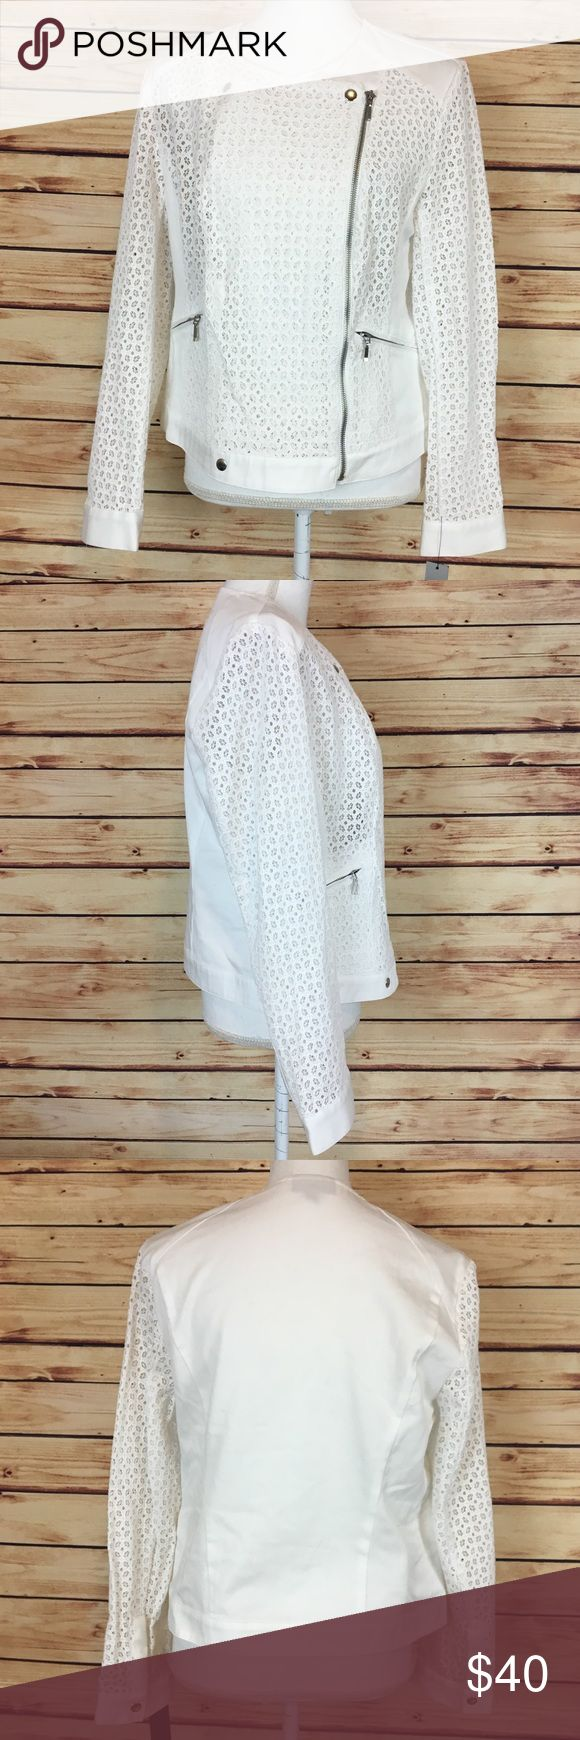 """NWT APT 9 White Crochet Zip Up Jacket Medium APT 9 jacket. White. Crochet detailing. Long sleeve. Zip up. Snap closures at top and bottom. Zipper pockets at waist. Medium.  New with tags and no flaws.  Measurements are approximately: 38"""" bust, 36"""" waist, and 20-22"""" length.  100% cotton.  No trades. All items come from a pet friendly home. Bundle to save! Apt. 9 Jackets & Coats"""